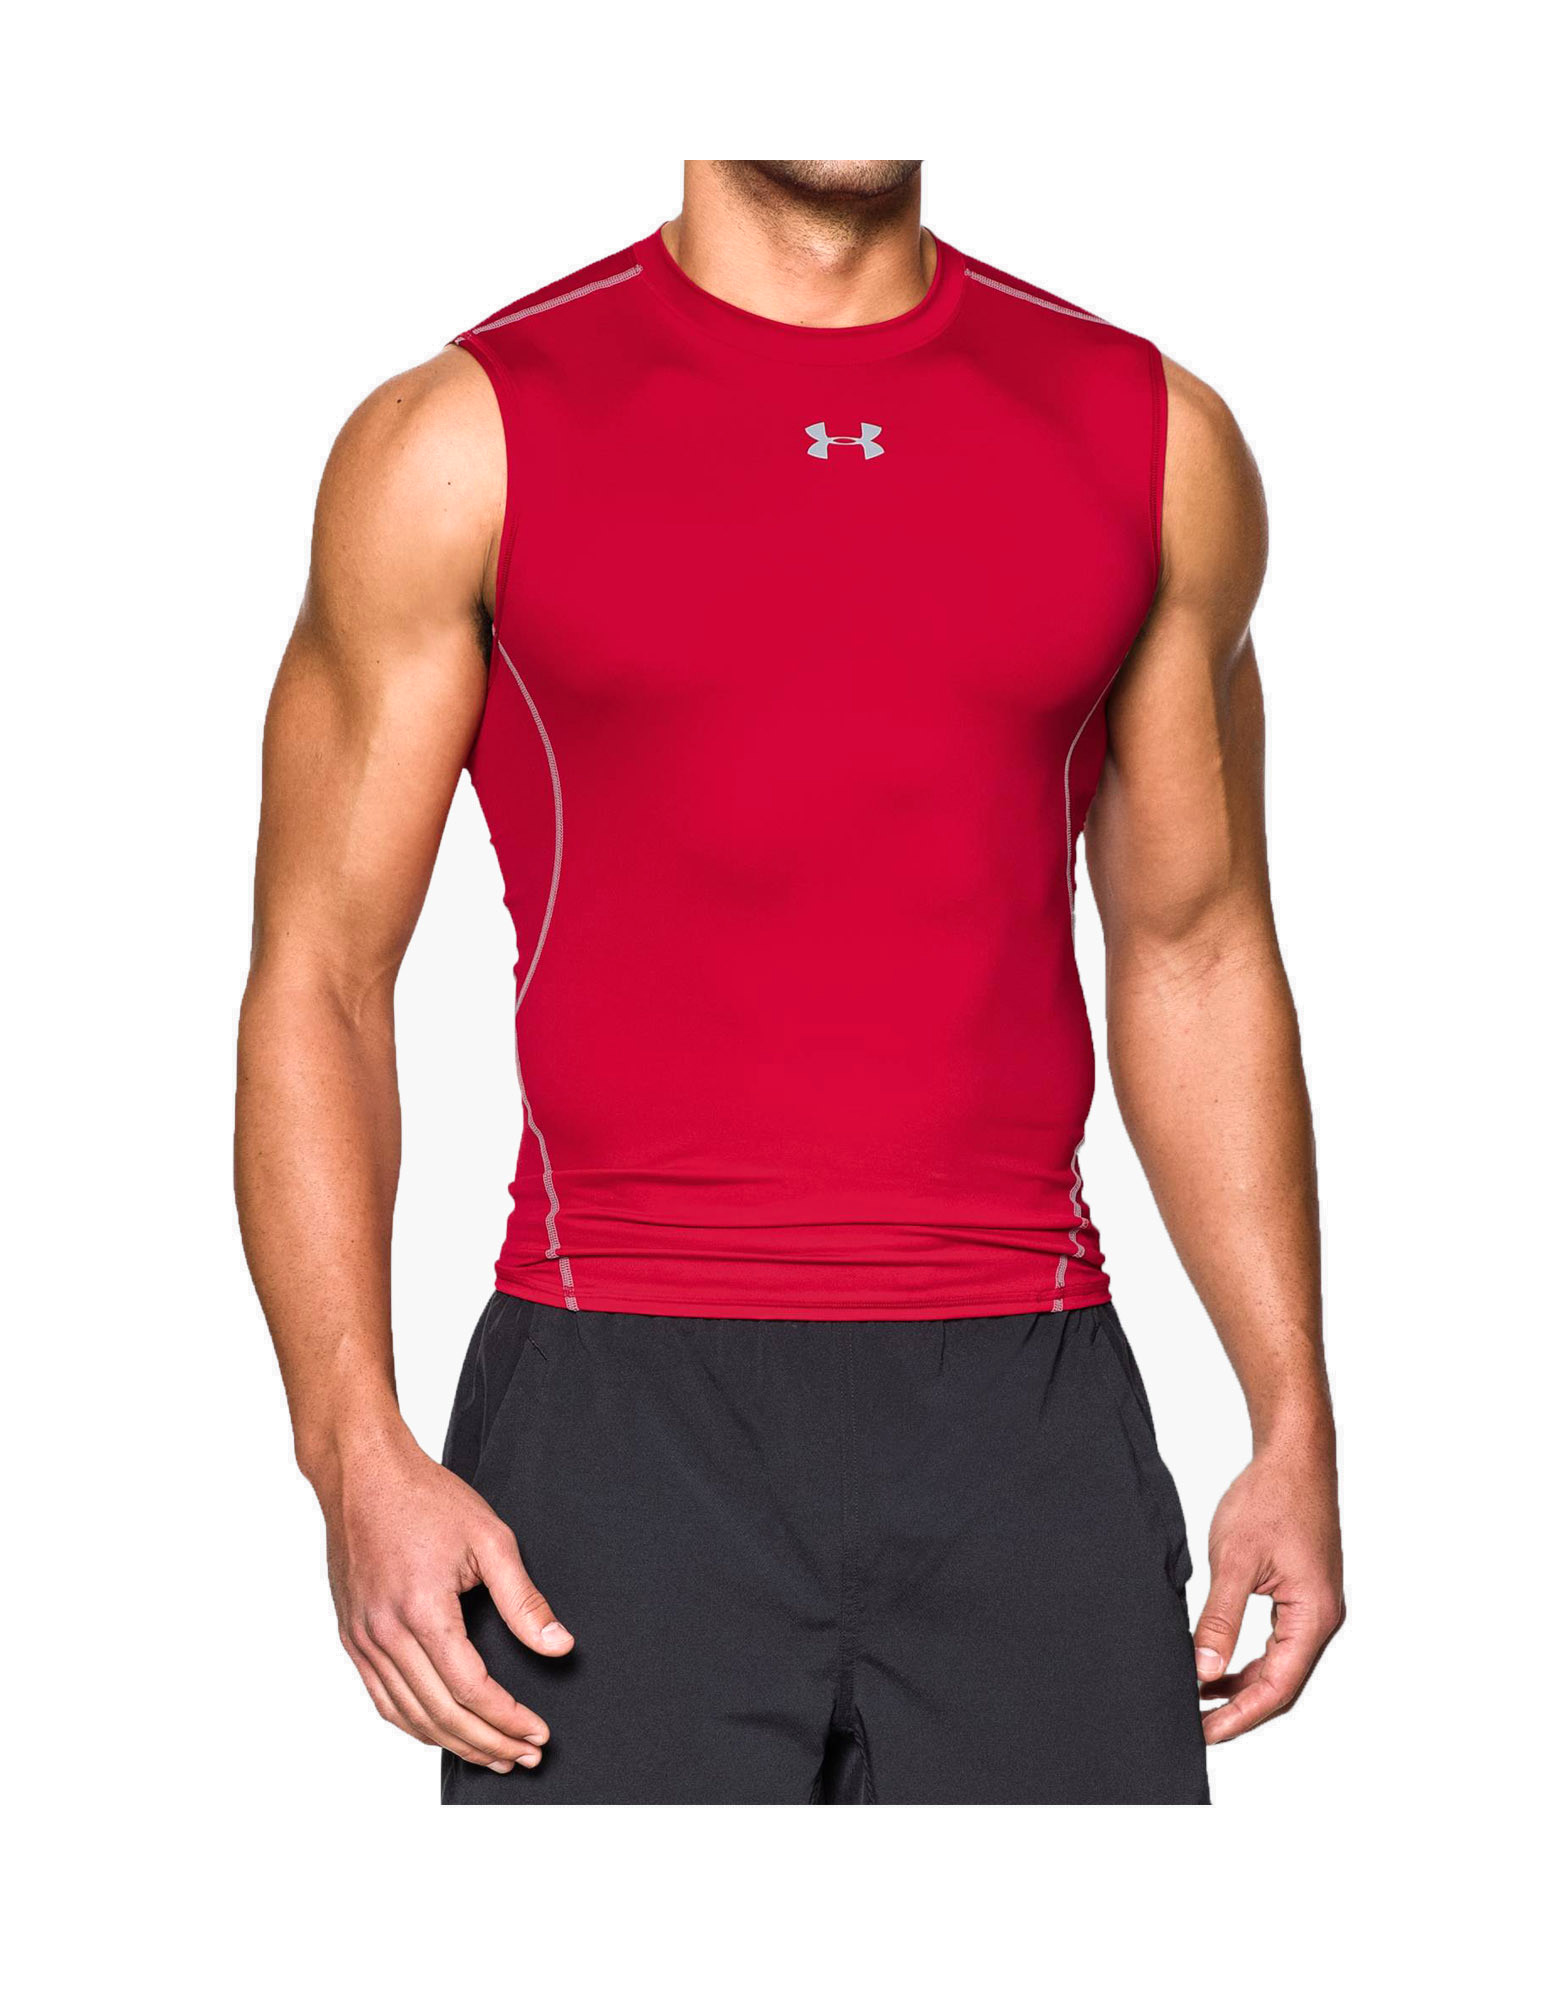 b23ba95cefd08 UNDER ARMOUR Men s UA HeatGear Armour Sleeveless Compression Shirt Colour   Red